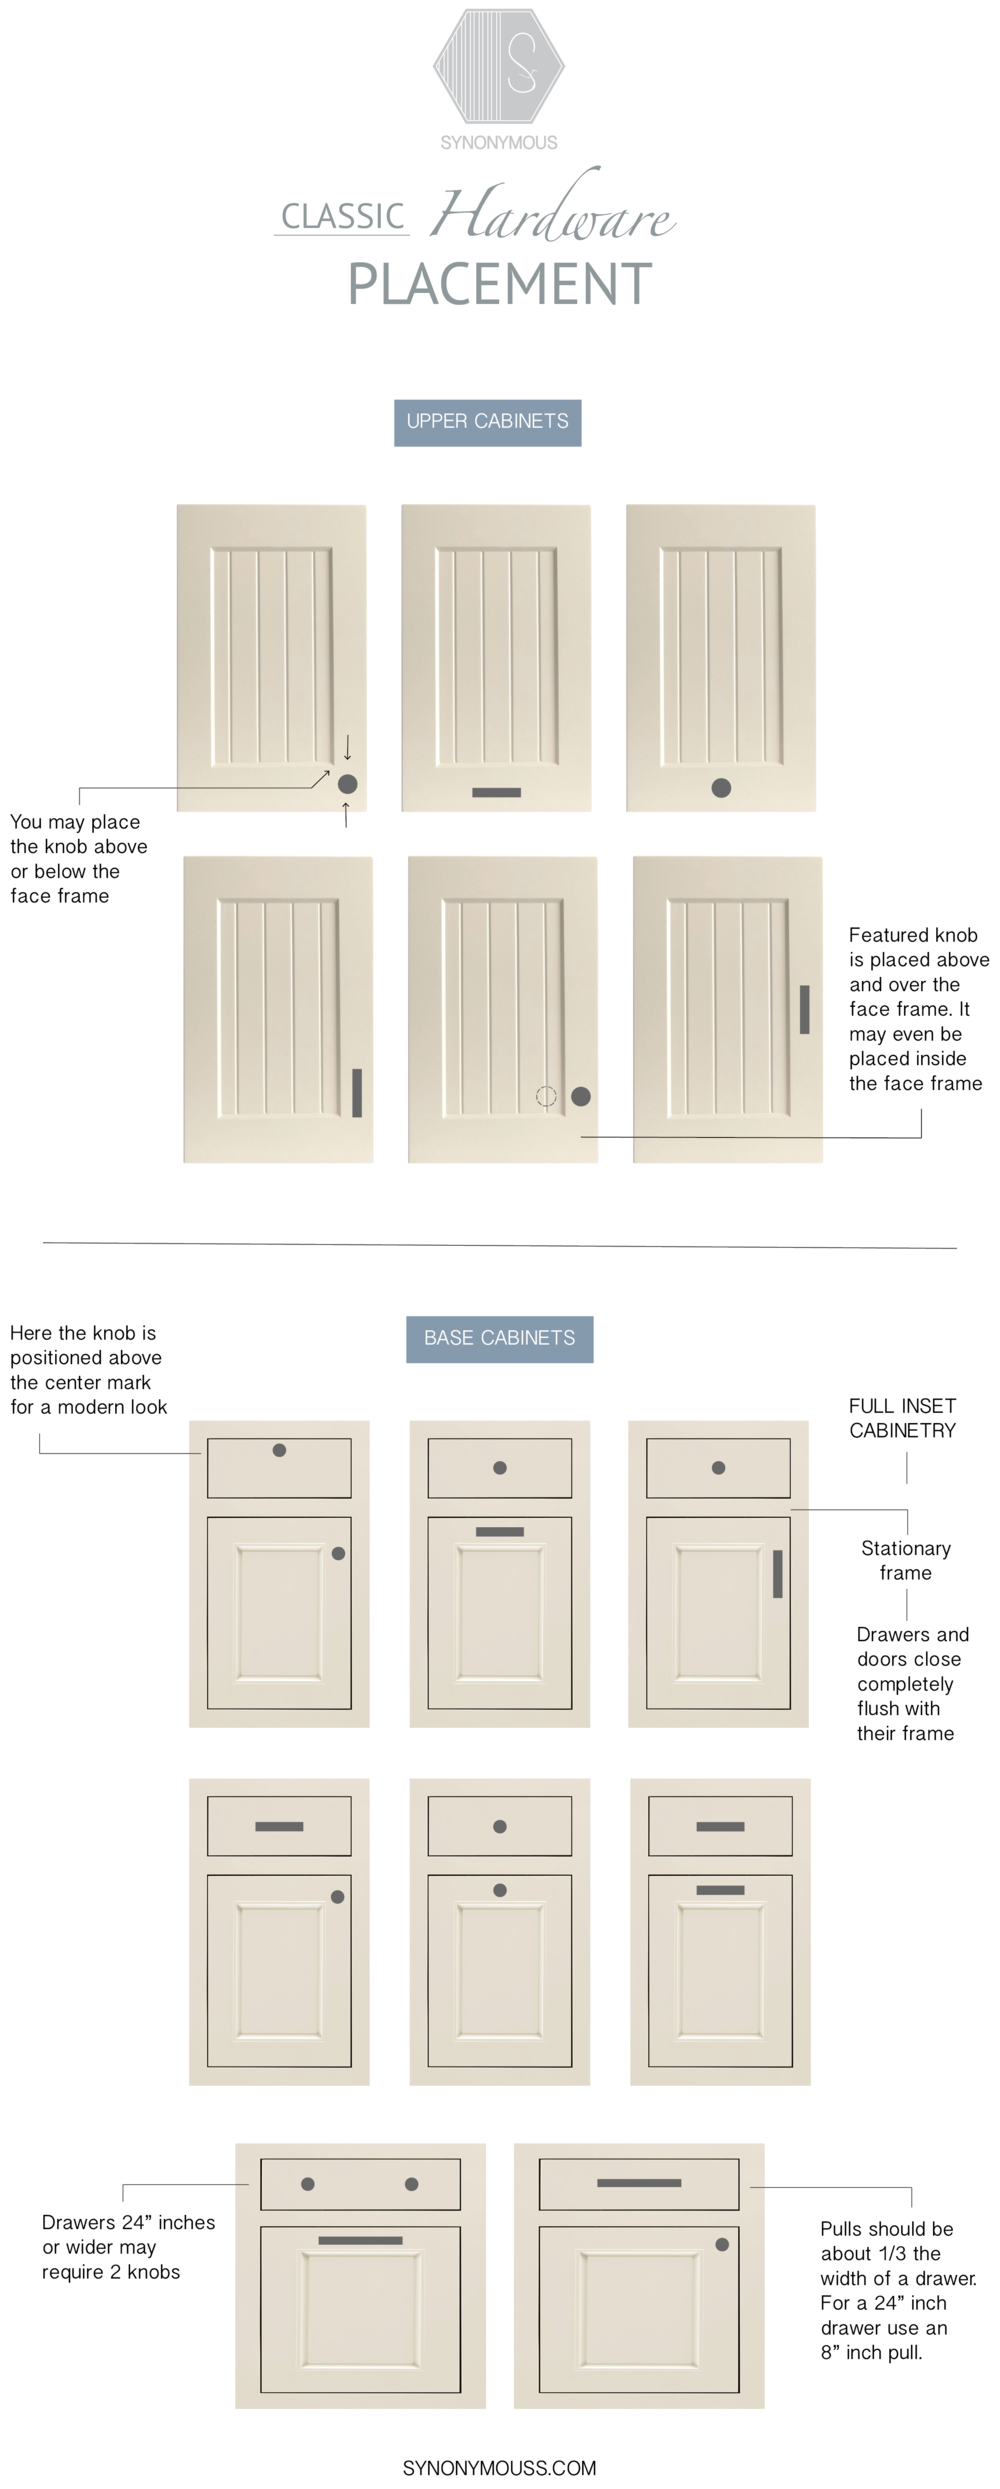 Bon Guide To: Classic Cabinet Hardware Placement   Knobs And Pulls Placement    Synonymouss.com